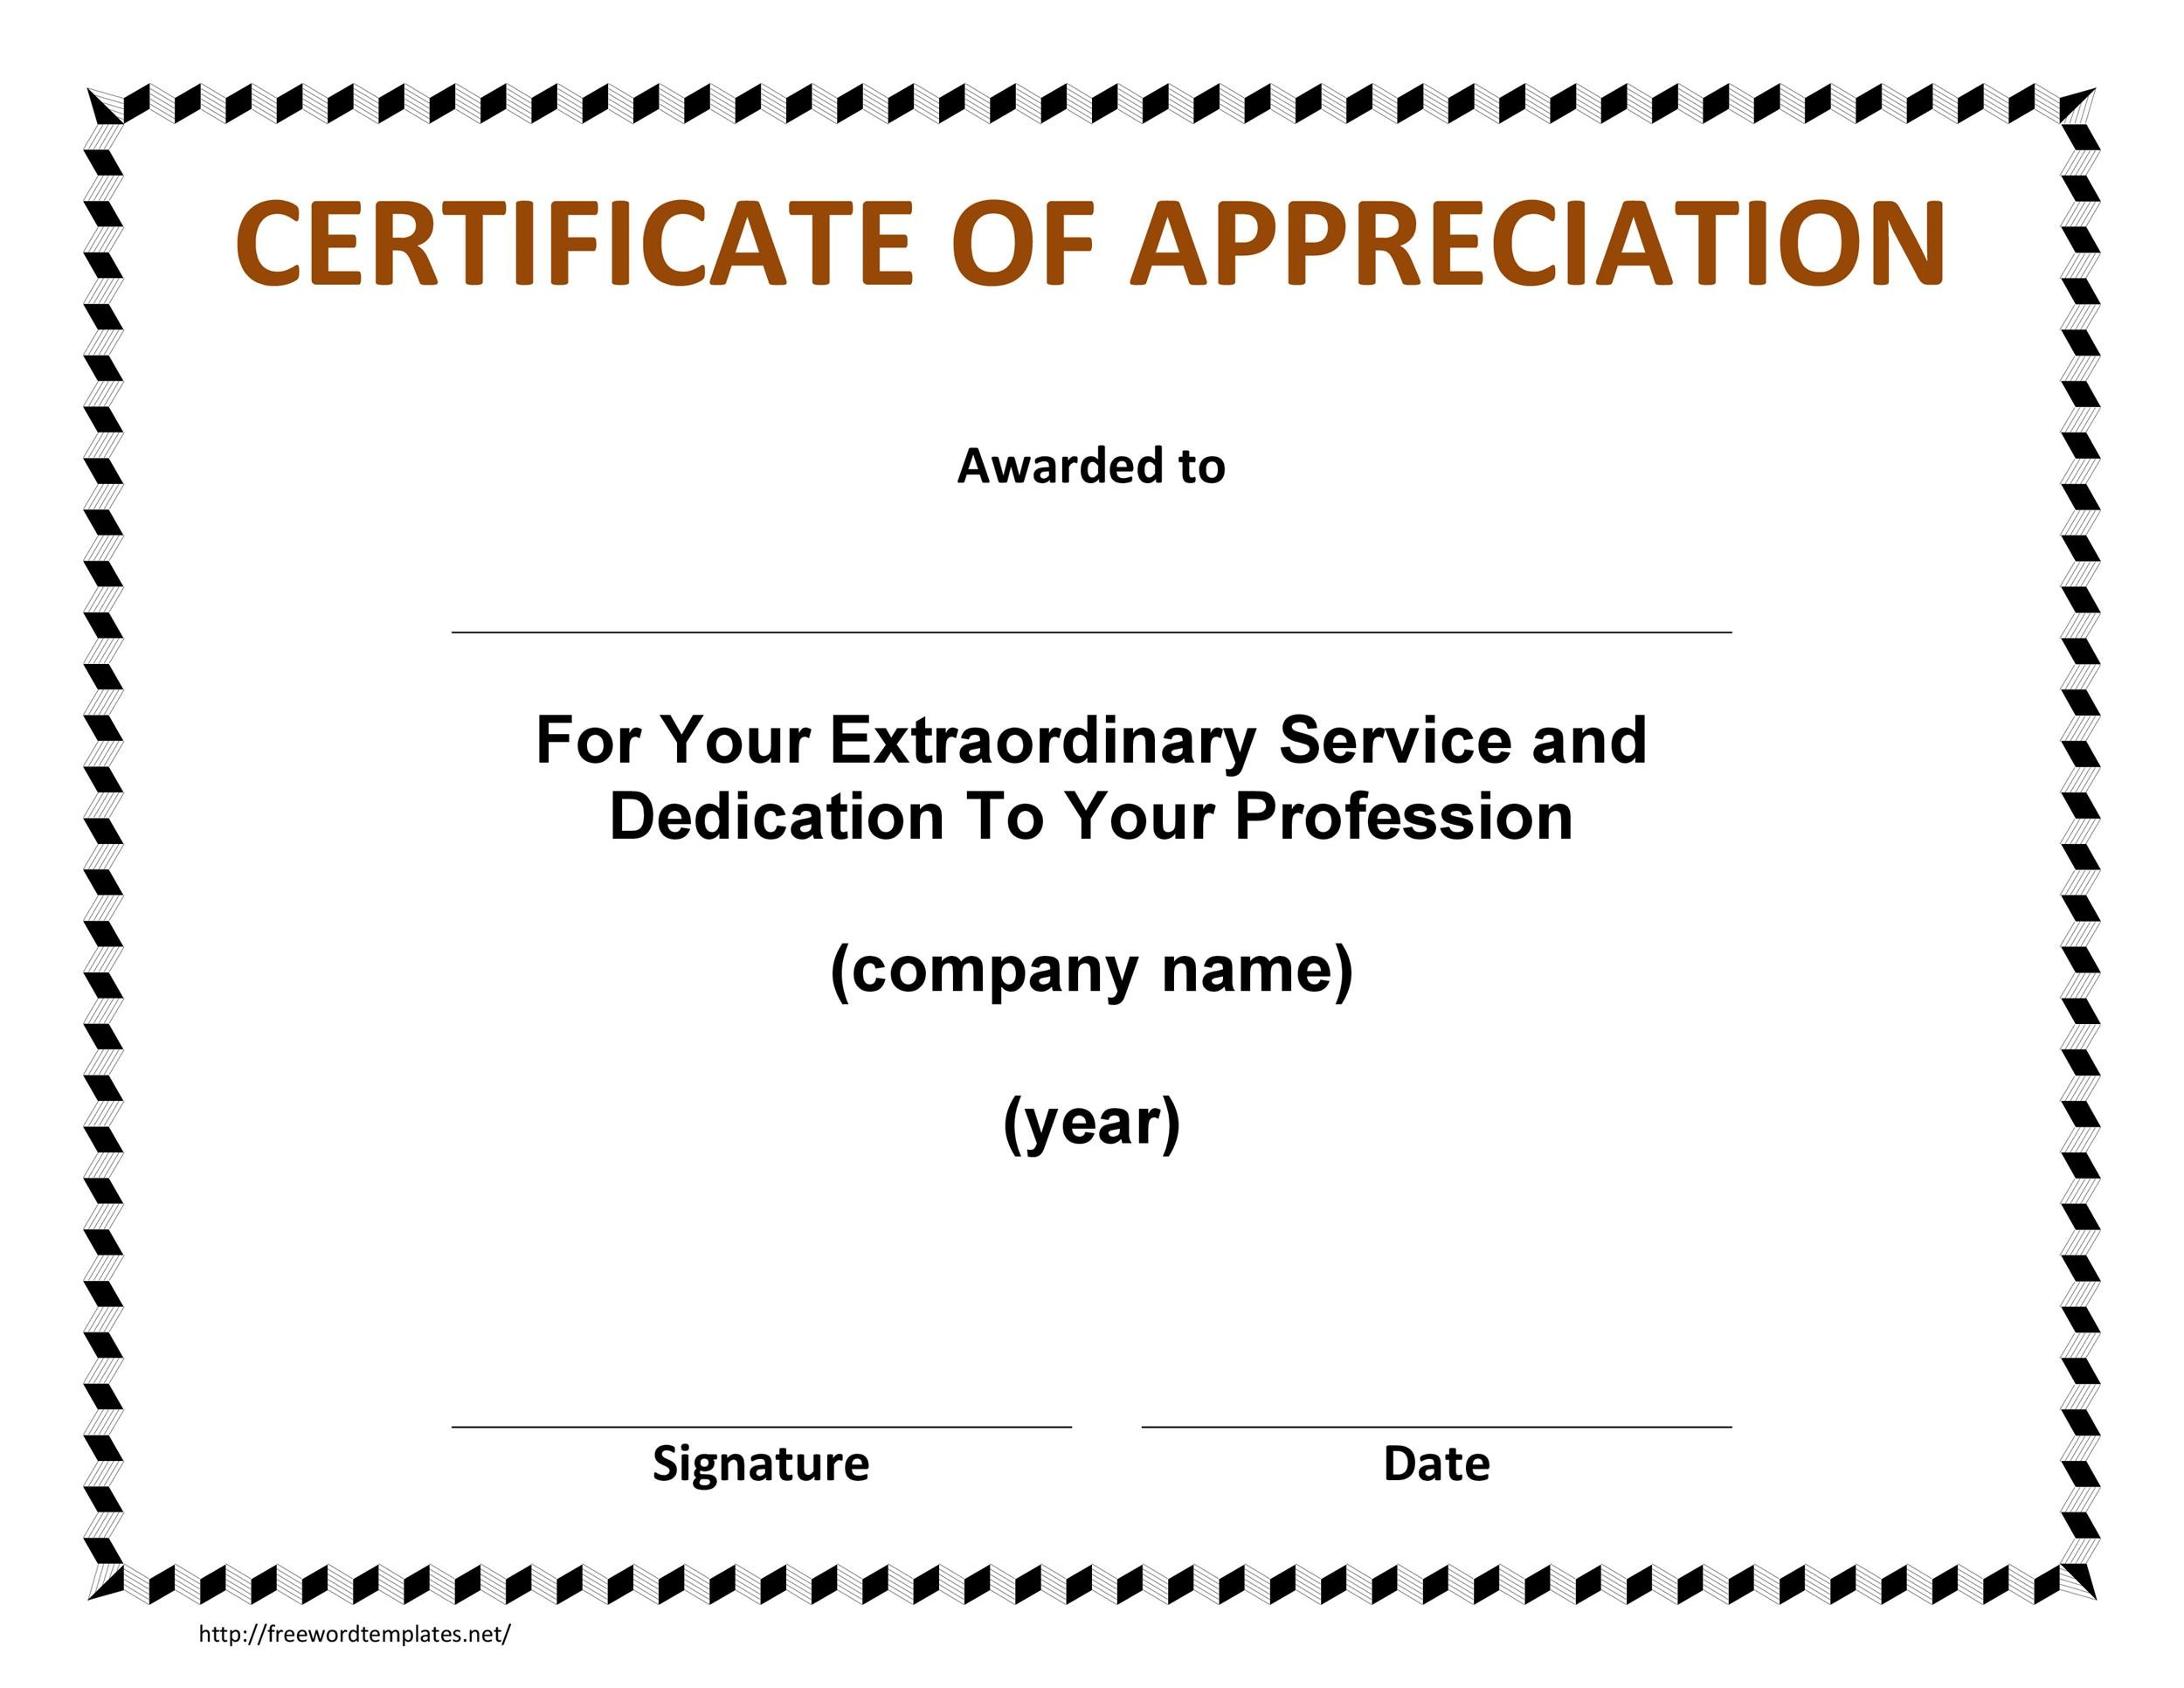 30 free certificate of appreciation templates and letters free certificate of appreciation 04 spiritdancerdesigns